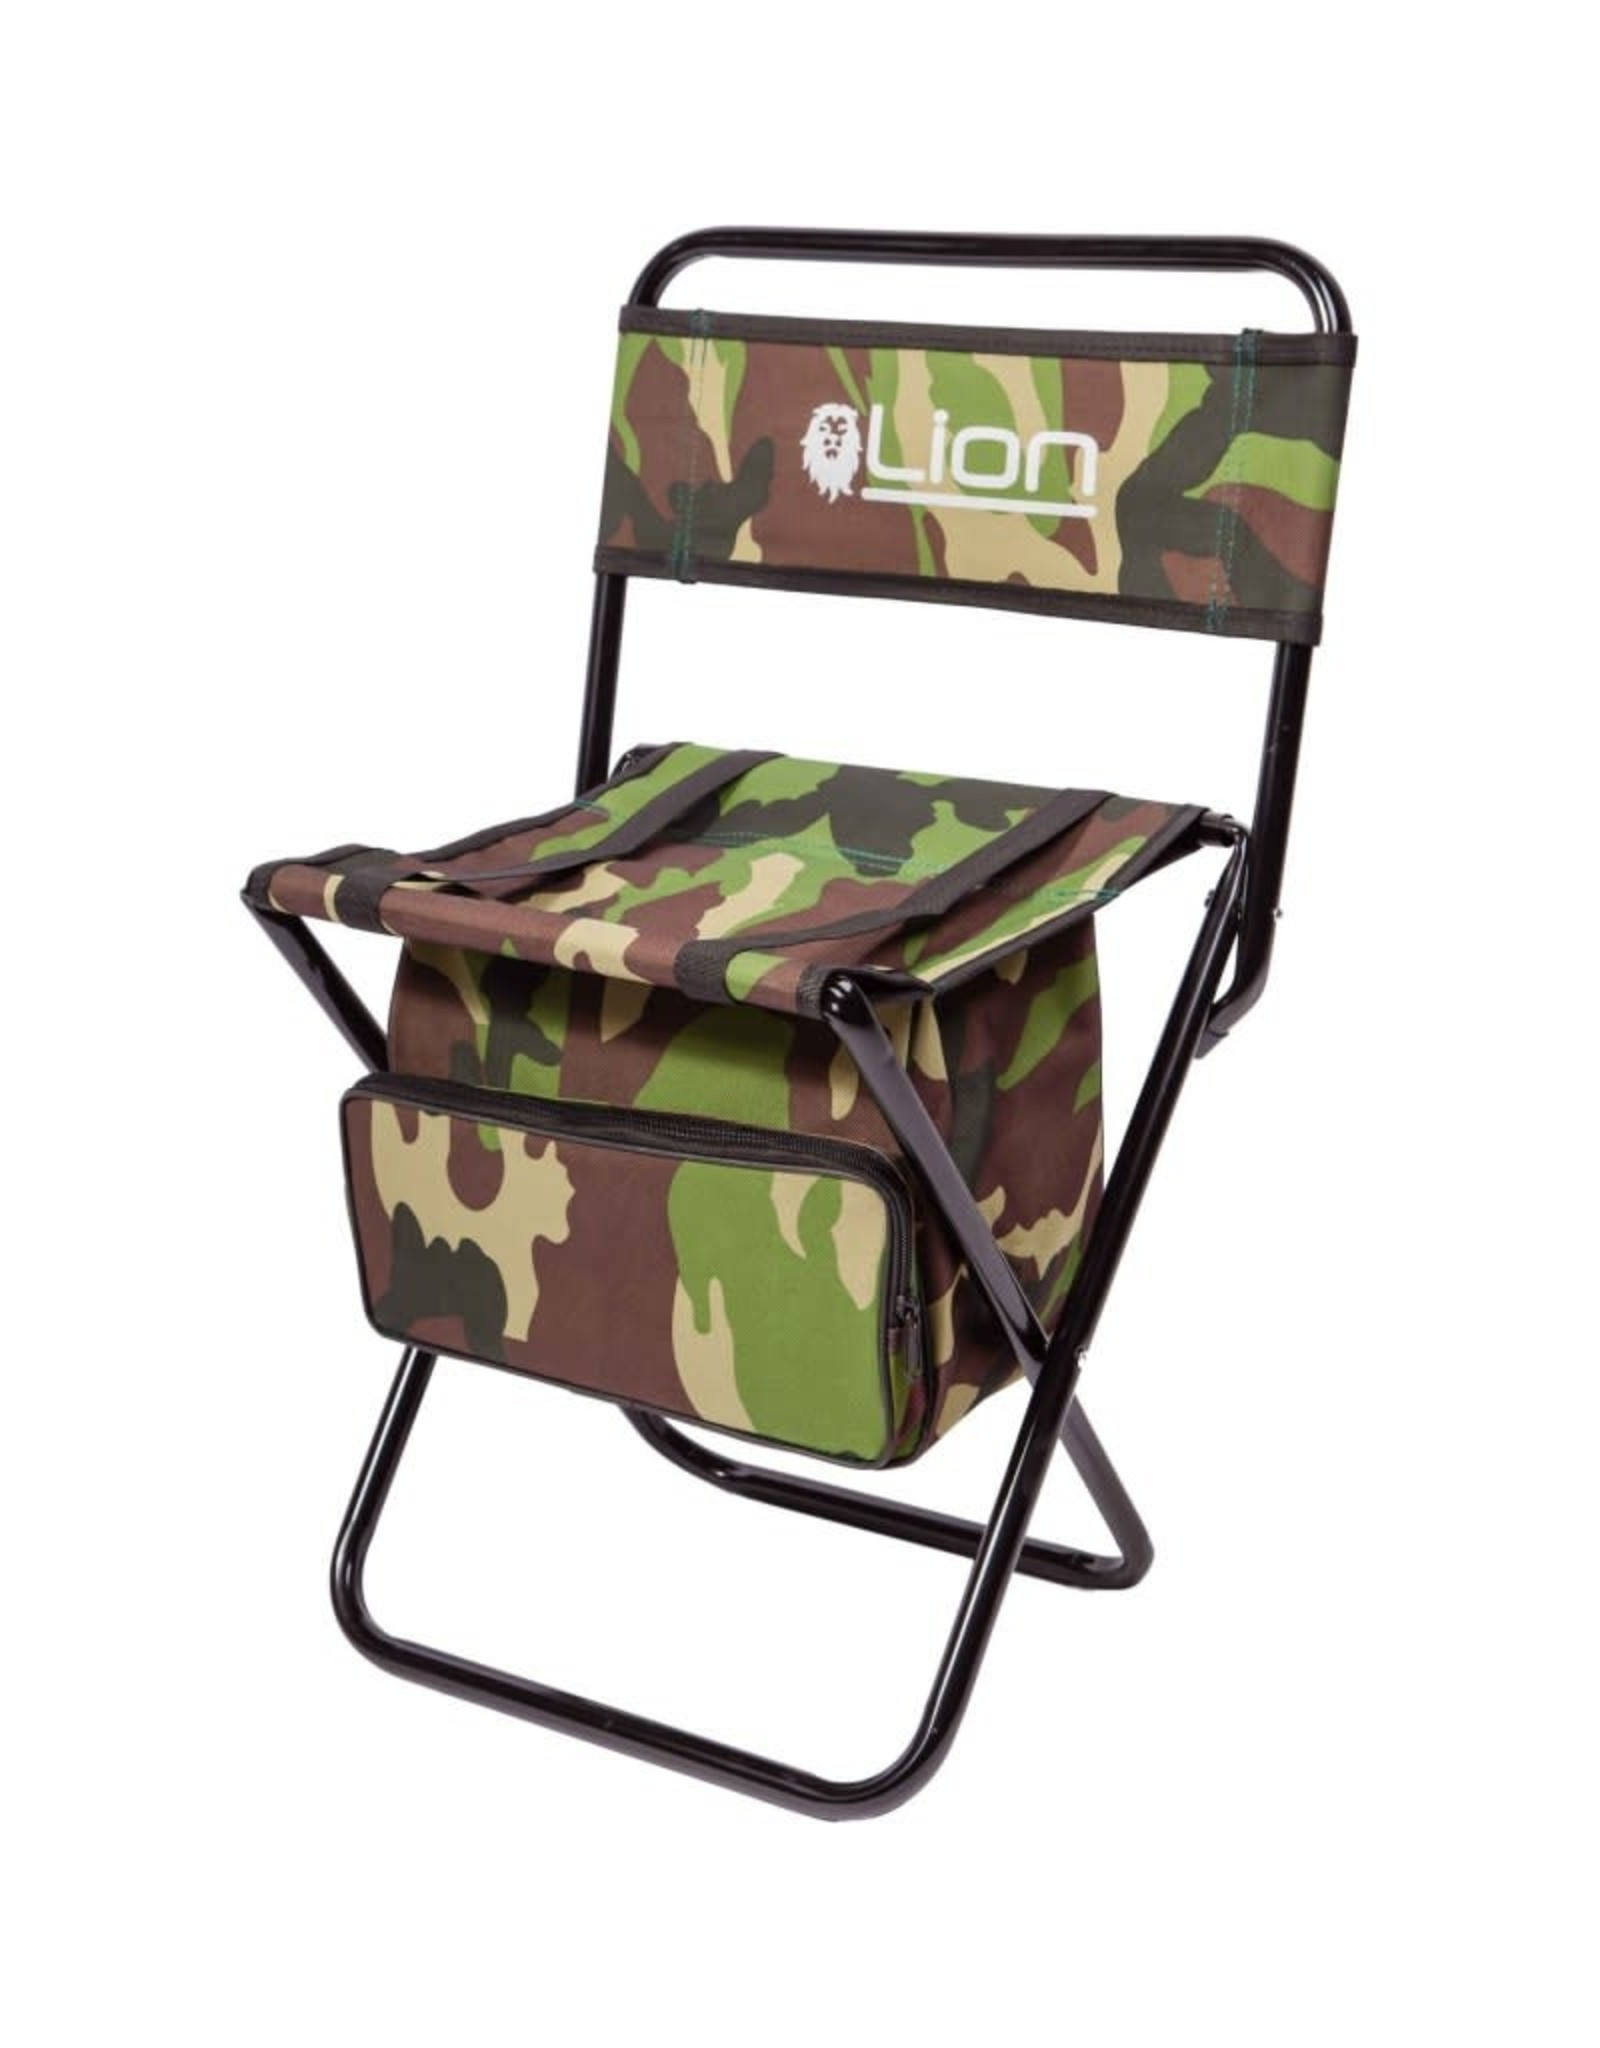 LION Chair Camouflage